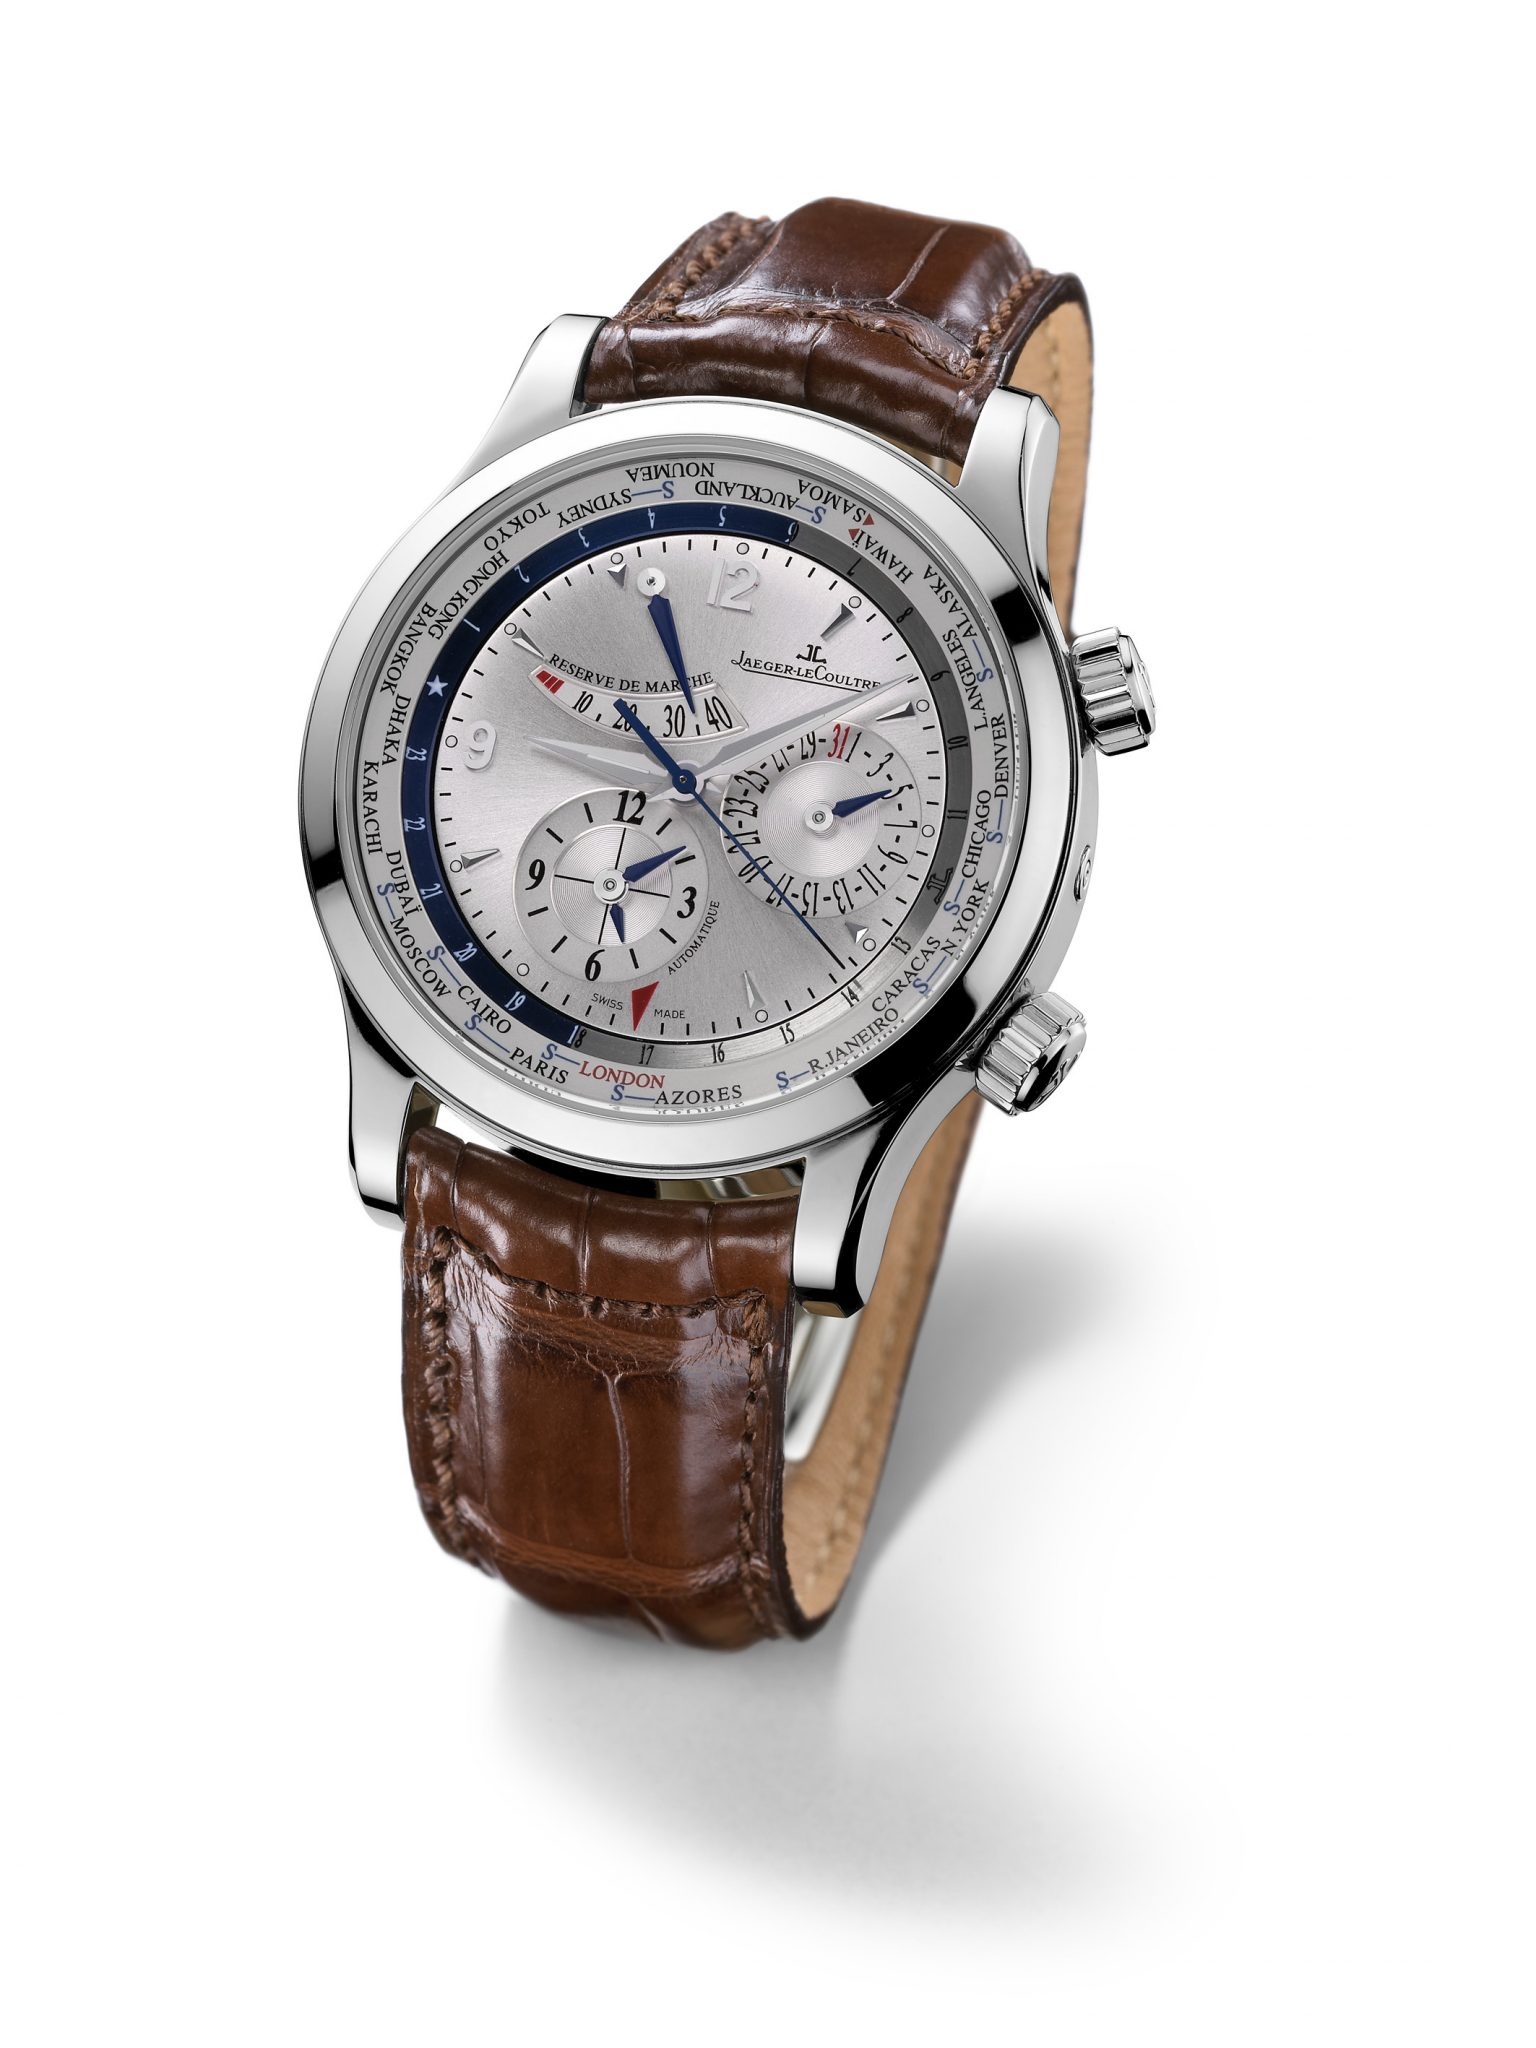 The Jaeger-LeCoultre Master World Geographic